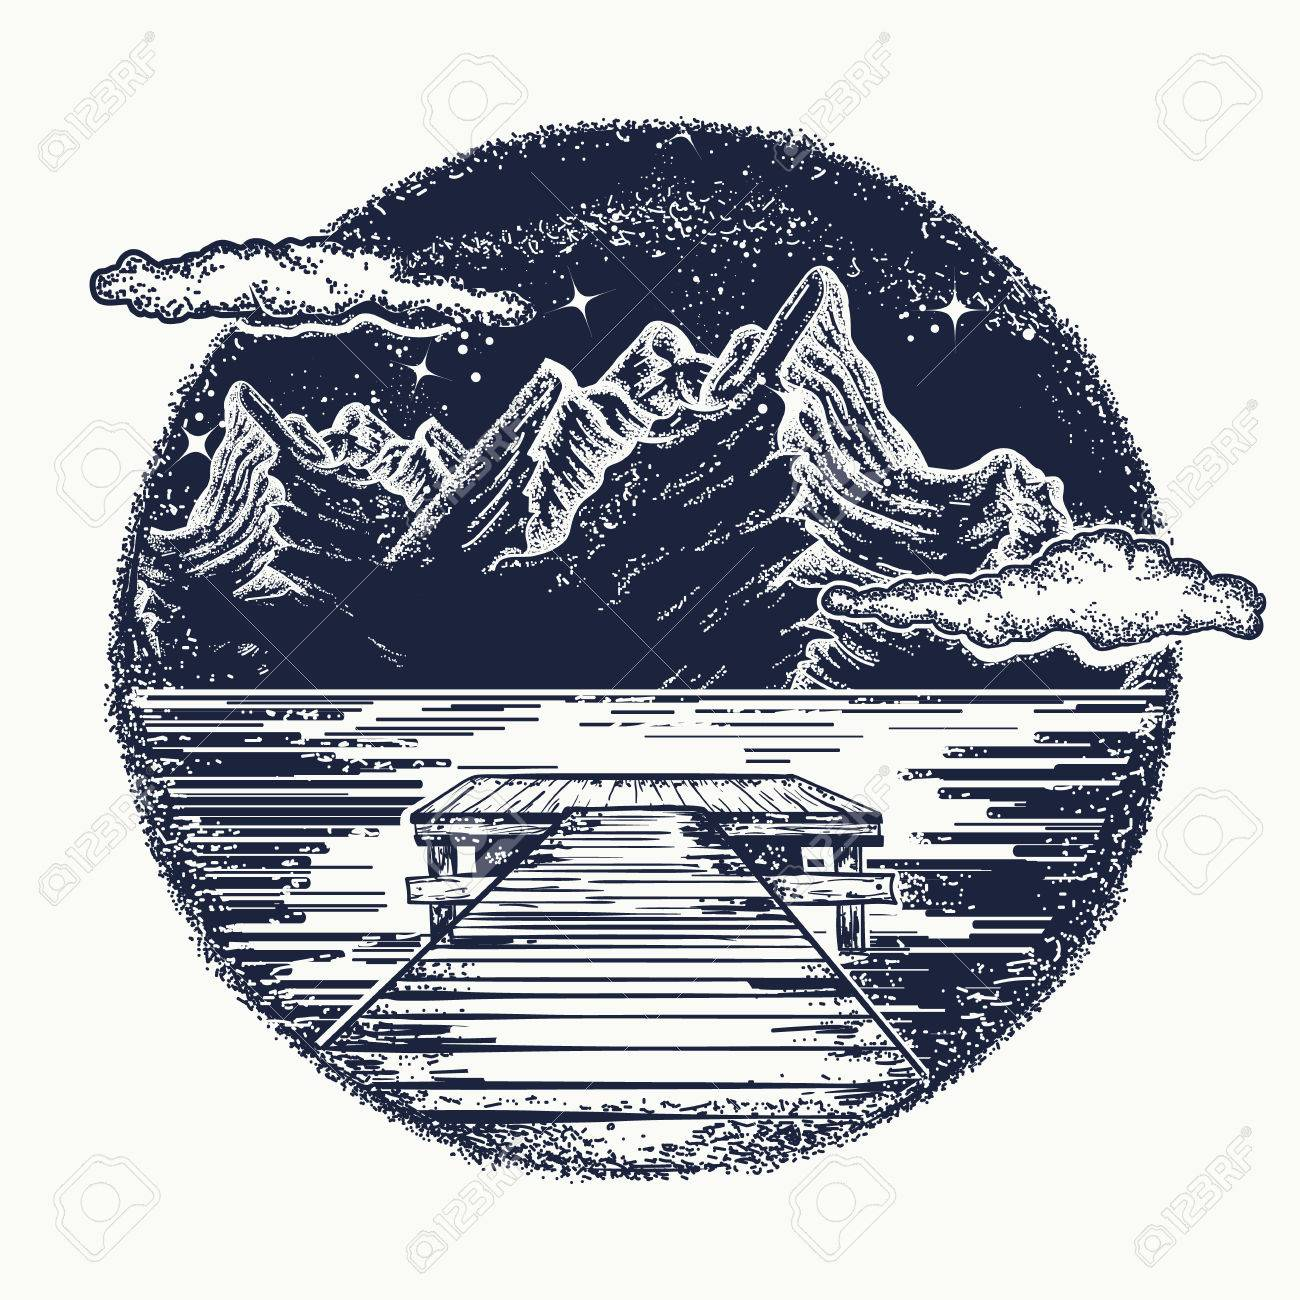 Mountains landscape tattoo and t shirt design mystical symbol mountains landscape tattoo and t shirt design mystical symbol of tourism dream biocorpaavc Images